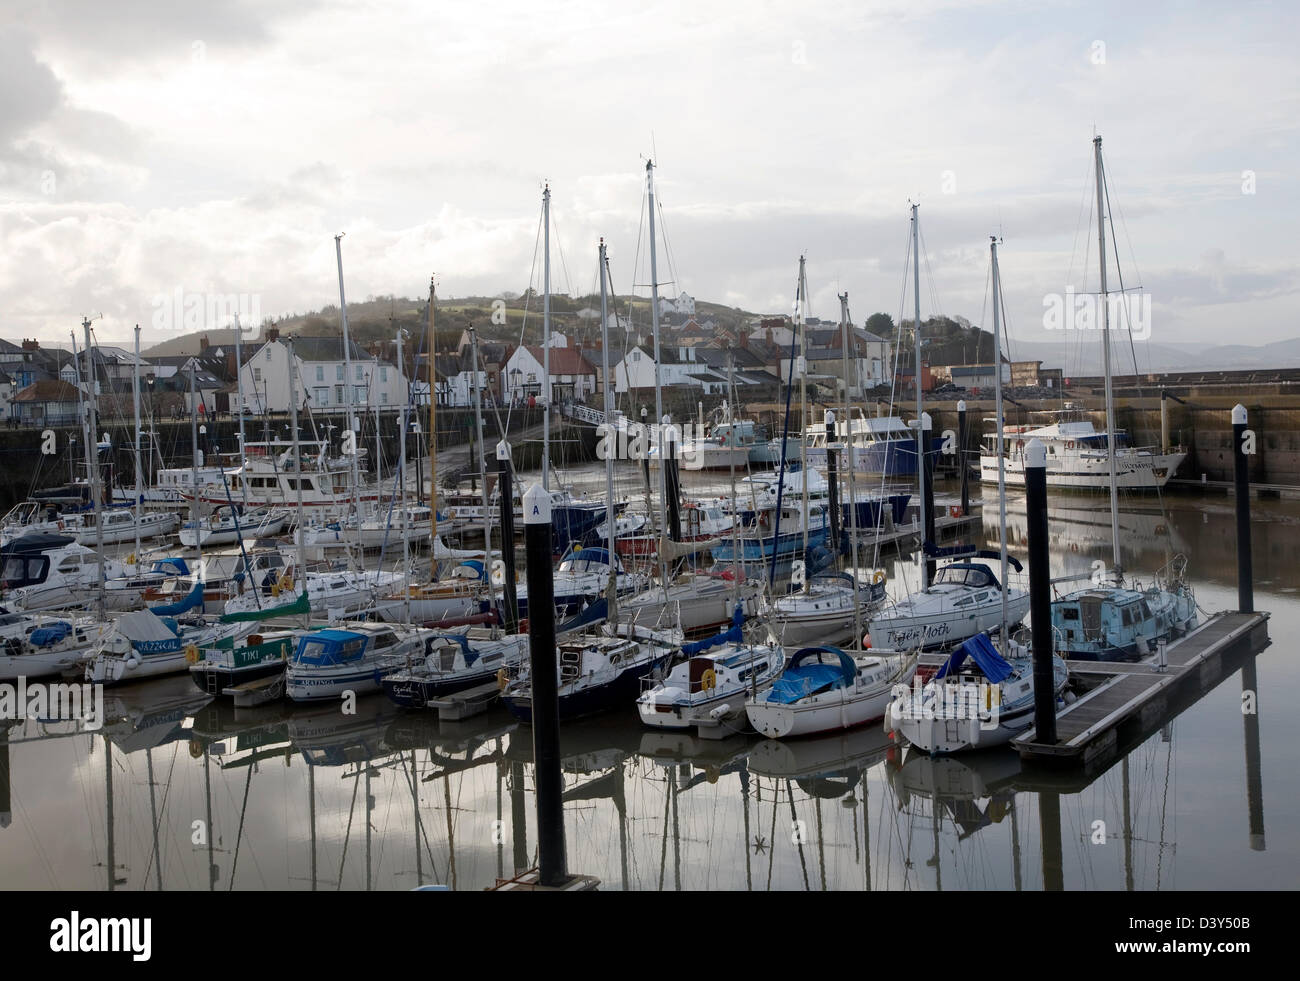 Boats moorings marina Watchet, Somerset, England - Stock Image